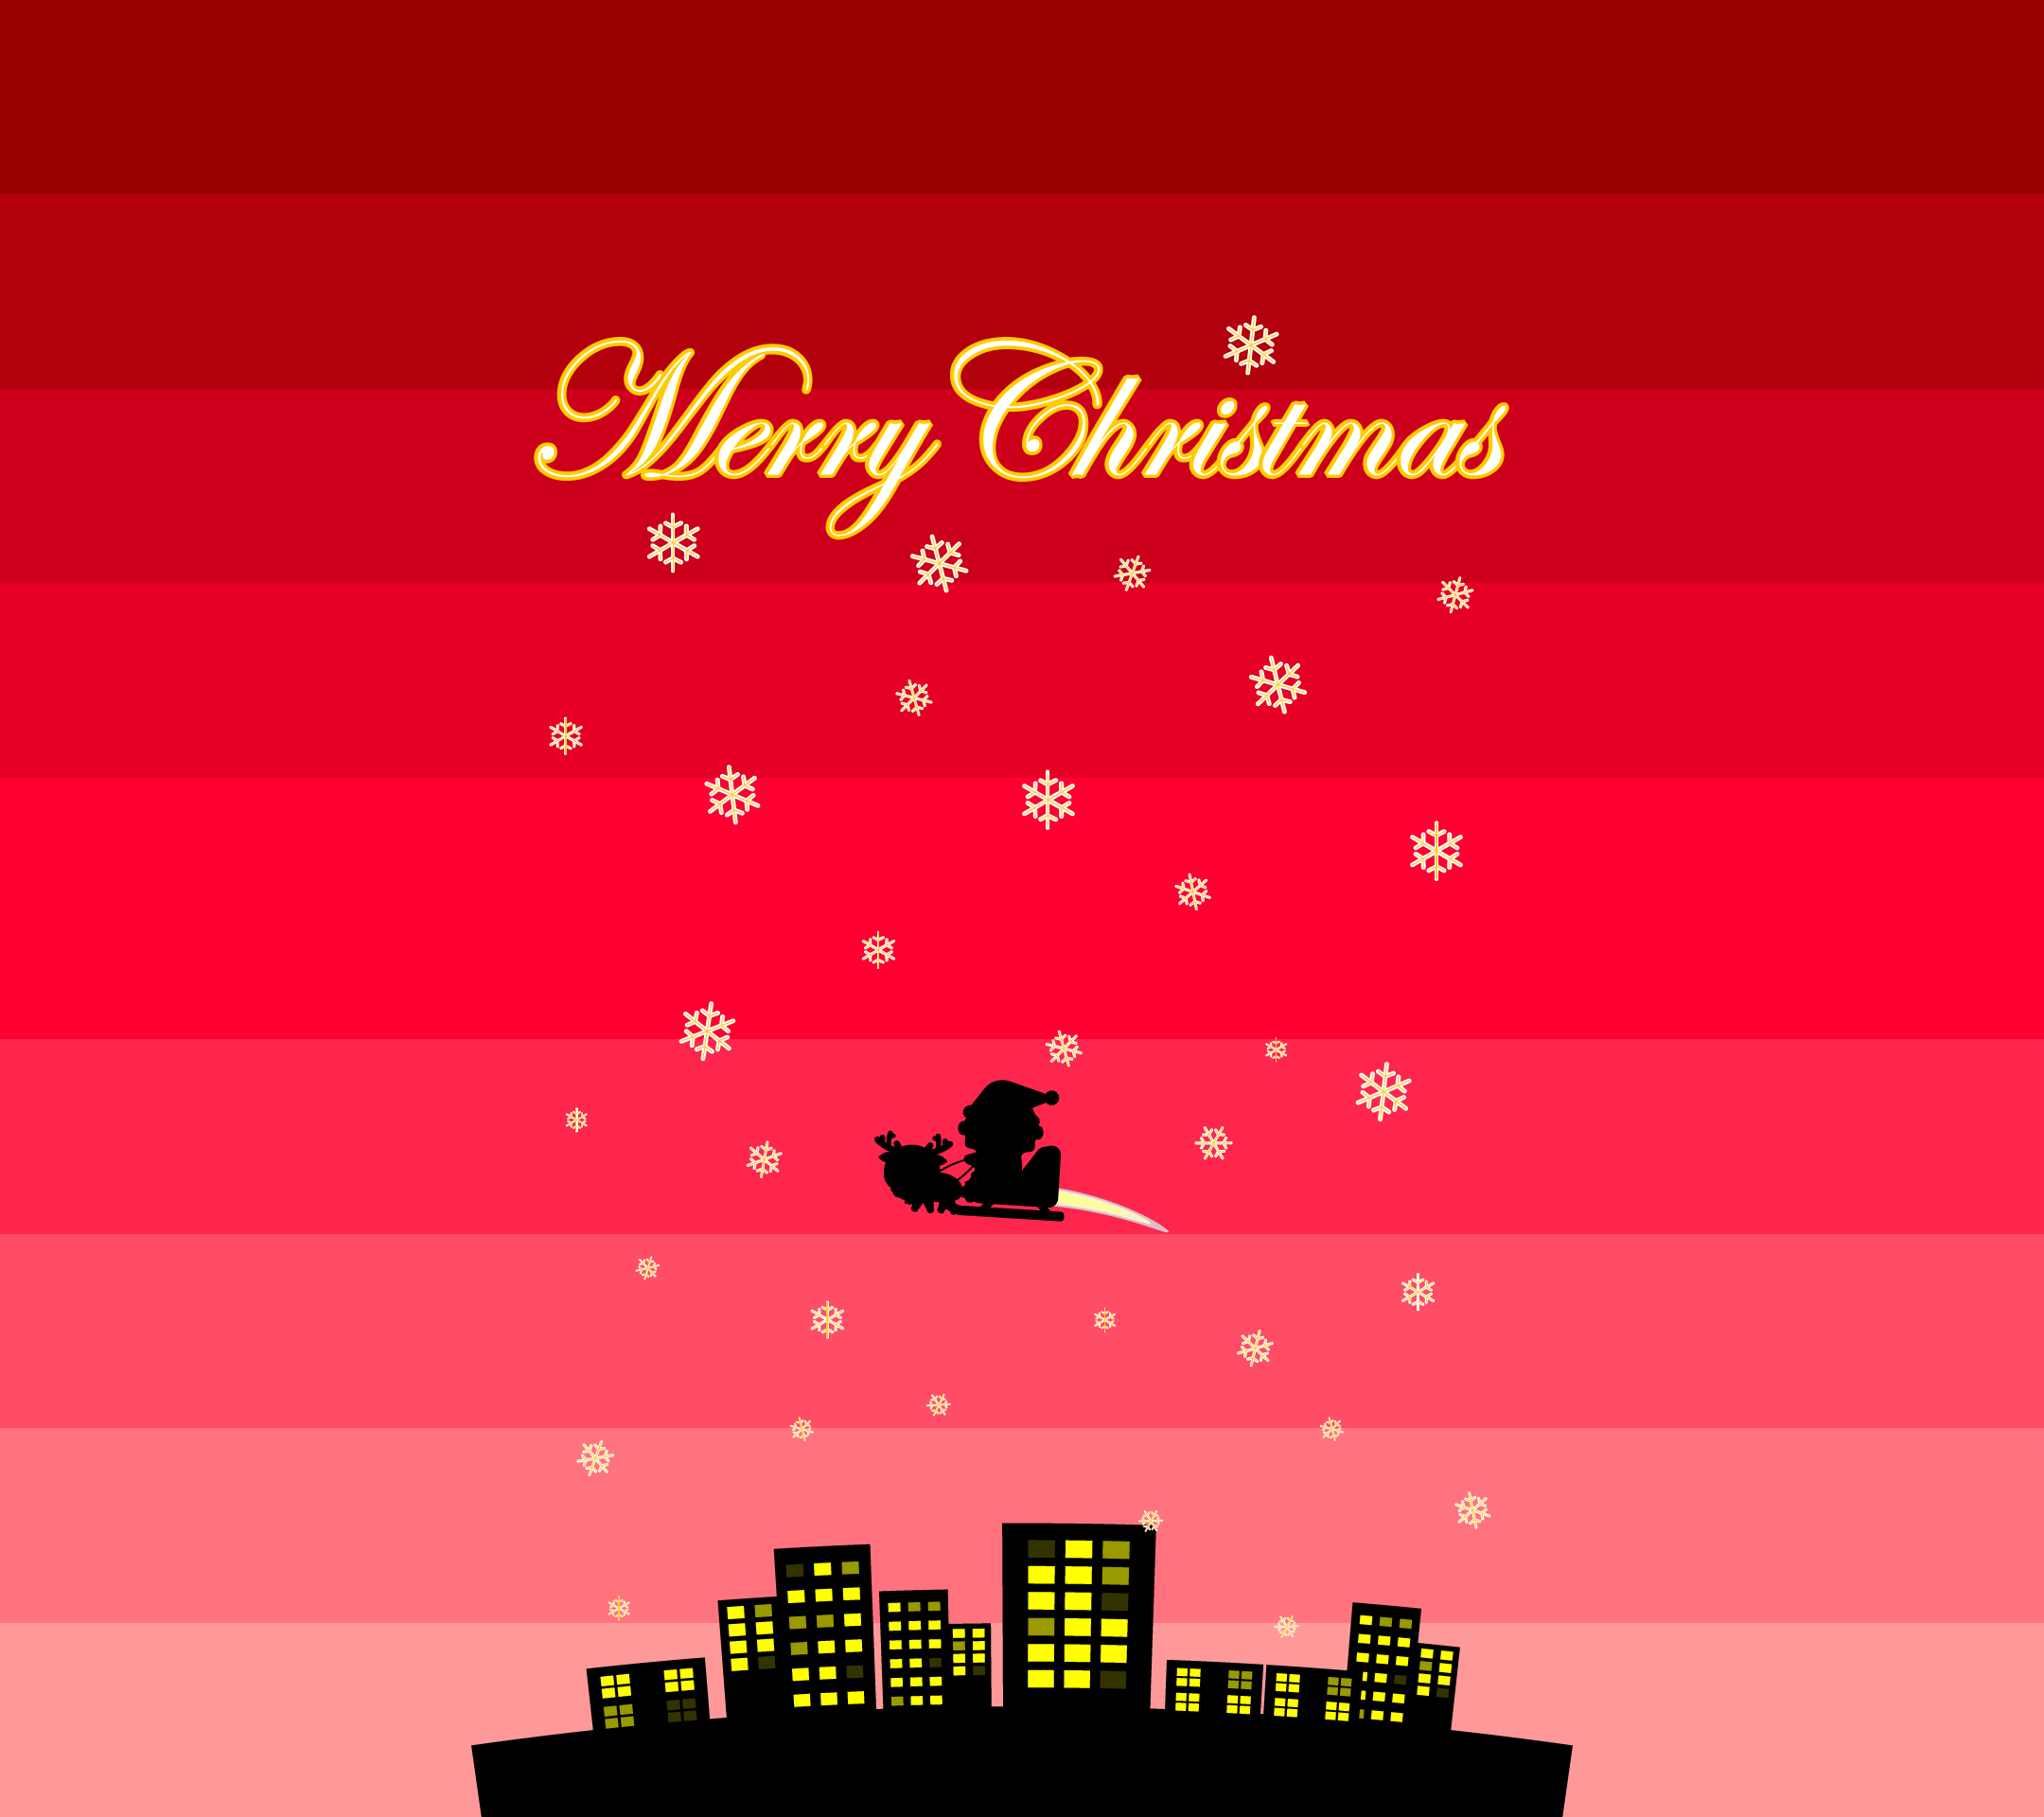 wallpaper6_christmas03b-android